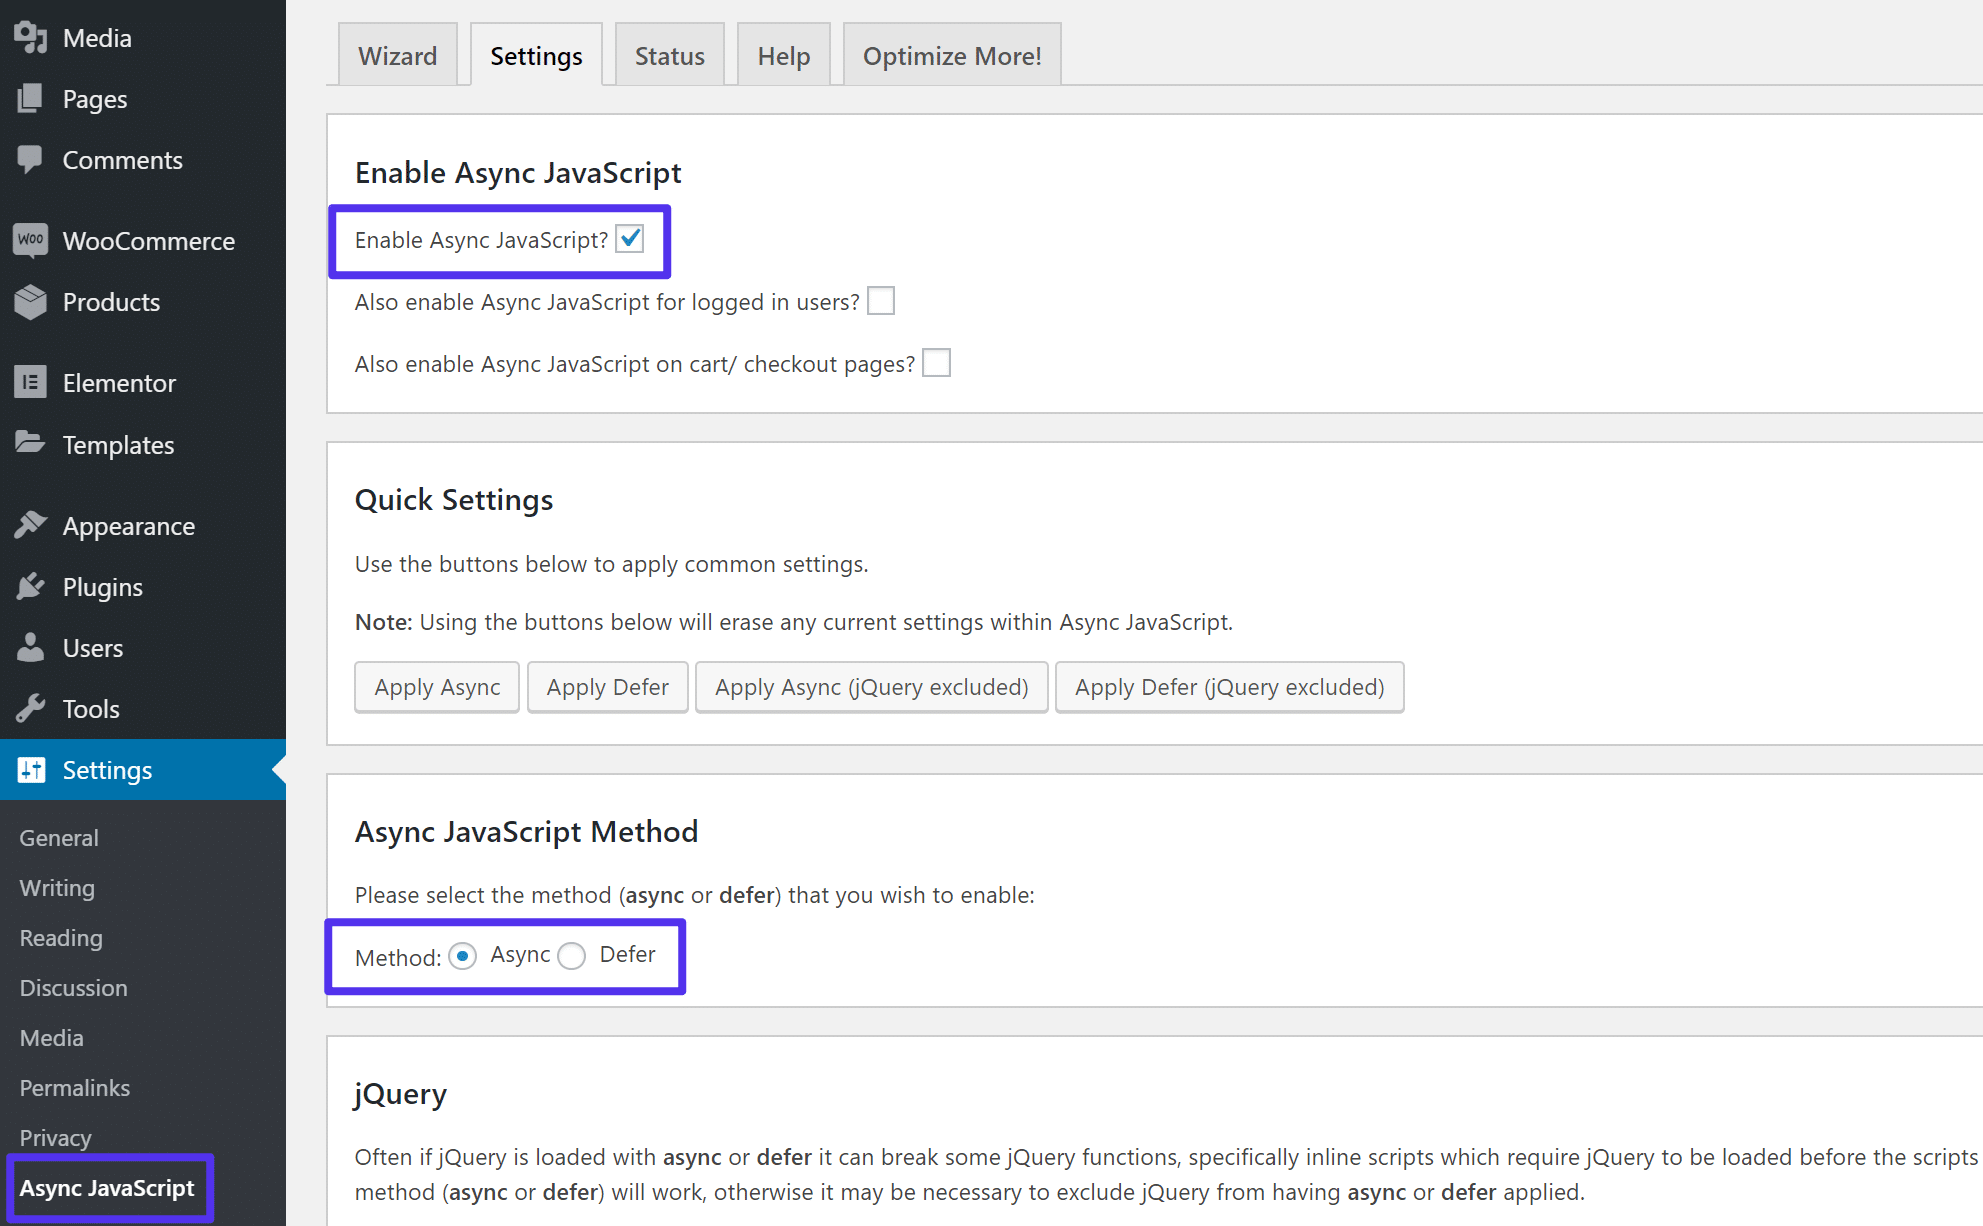 How to use the Async JavaScript plugin